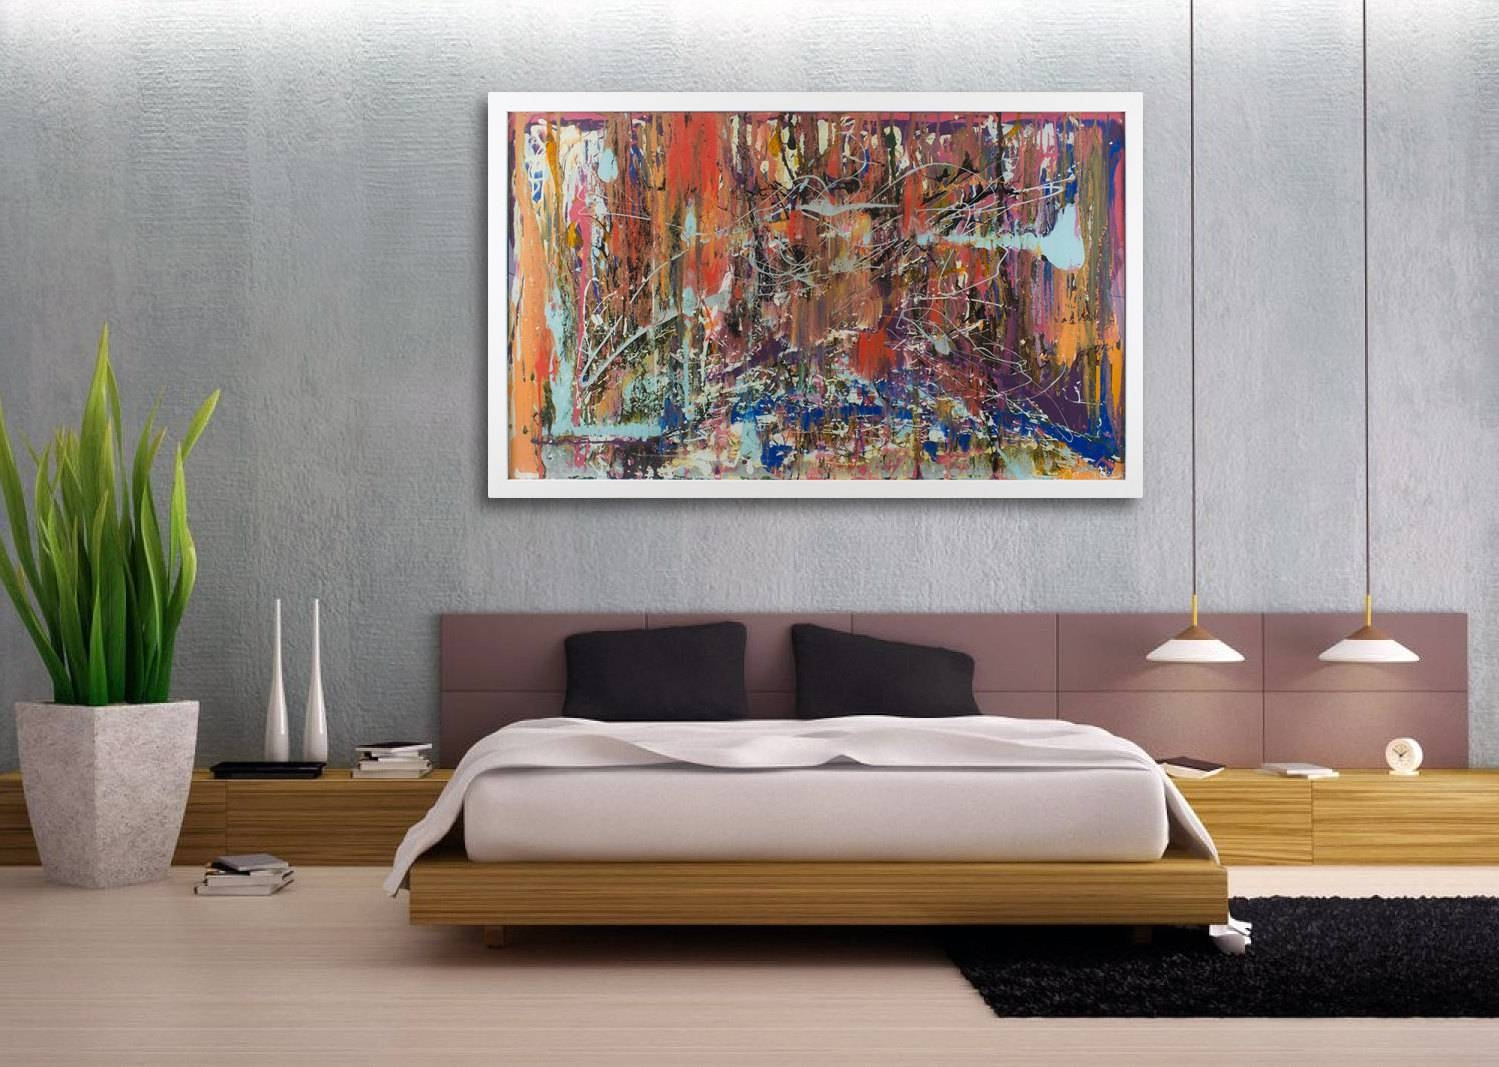 Shapely Oversized Wall Art Deny Designs Home Accessories Oversized In Best And Newest Huge Wall Art (View 15 of 20)